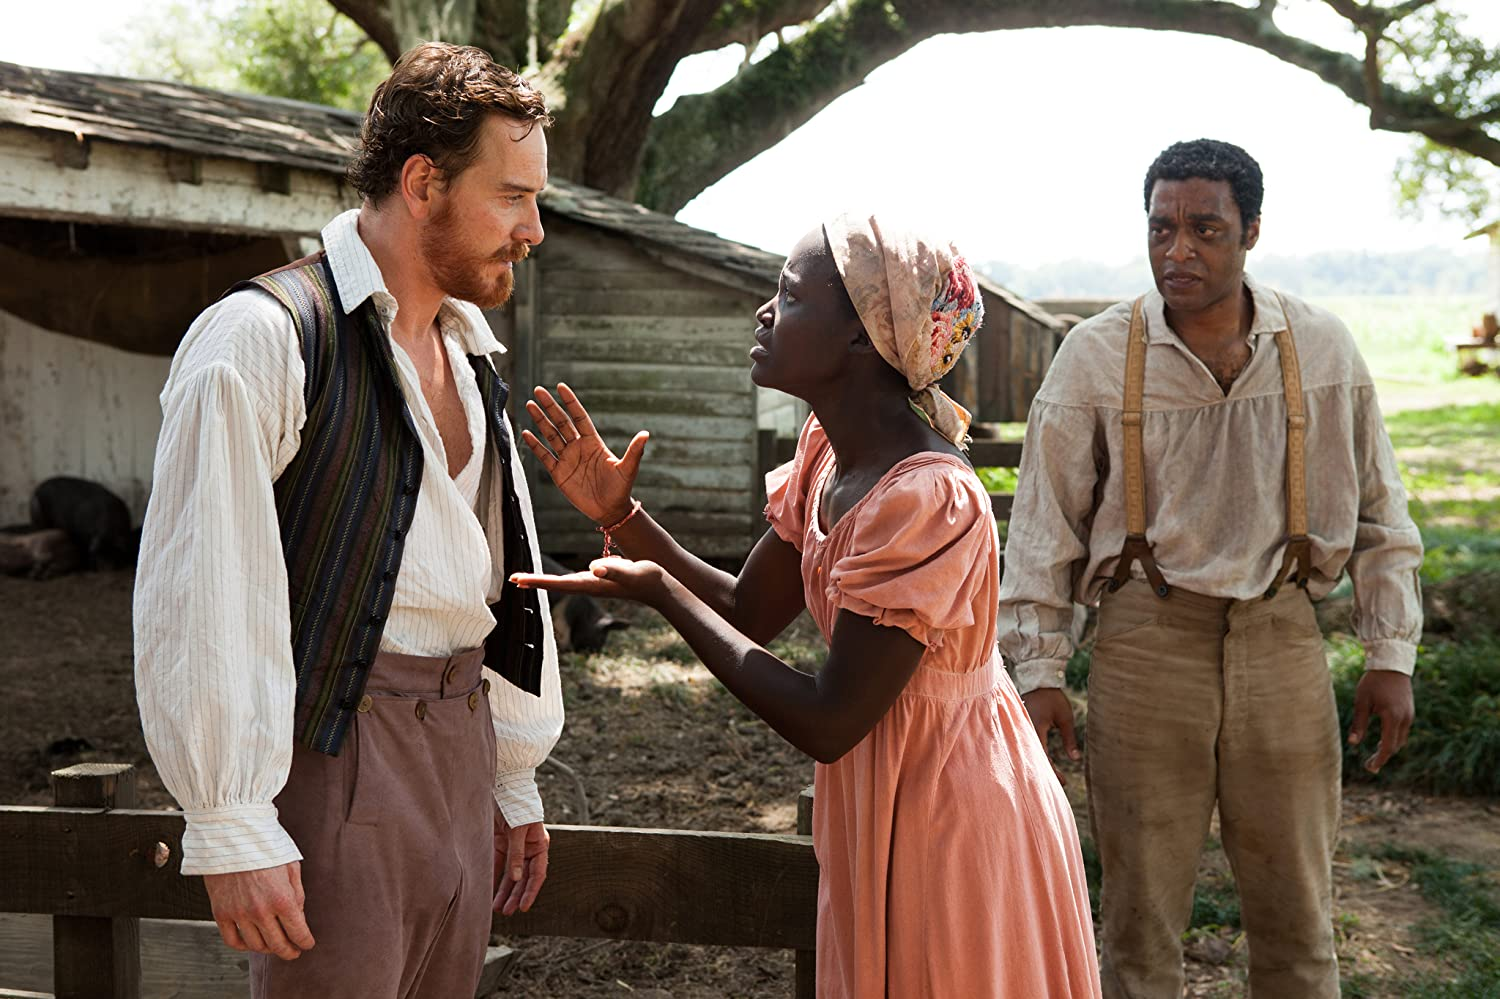 Chiwetel Ejiofor, Michael Fassbender, and Lupita Nyong'o in 12 Years a Slave (2013)